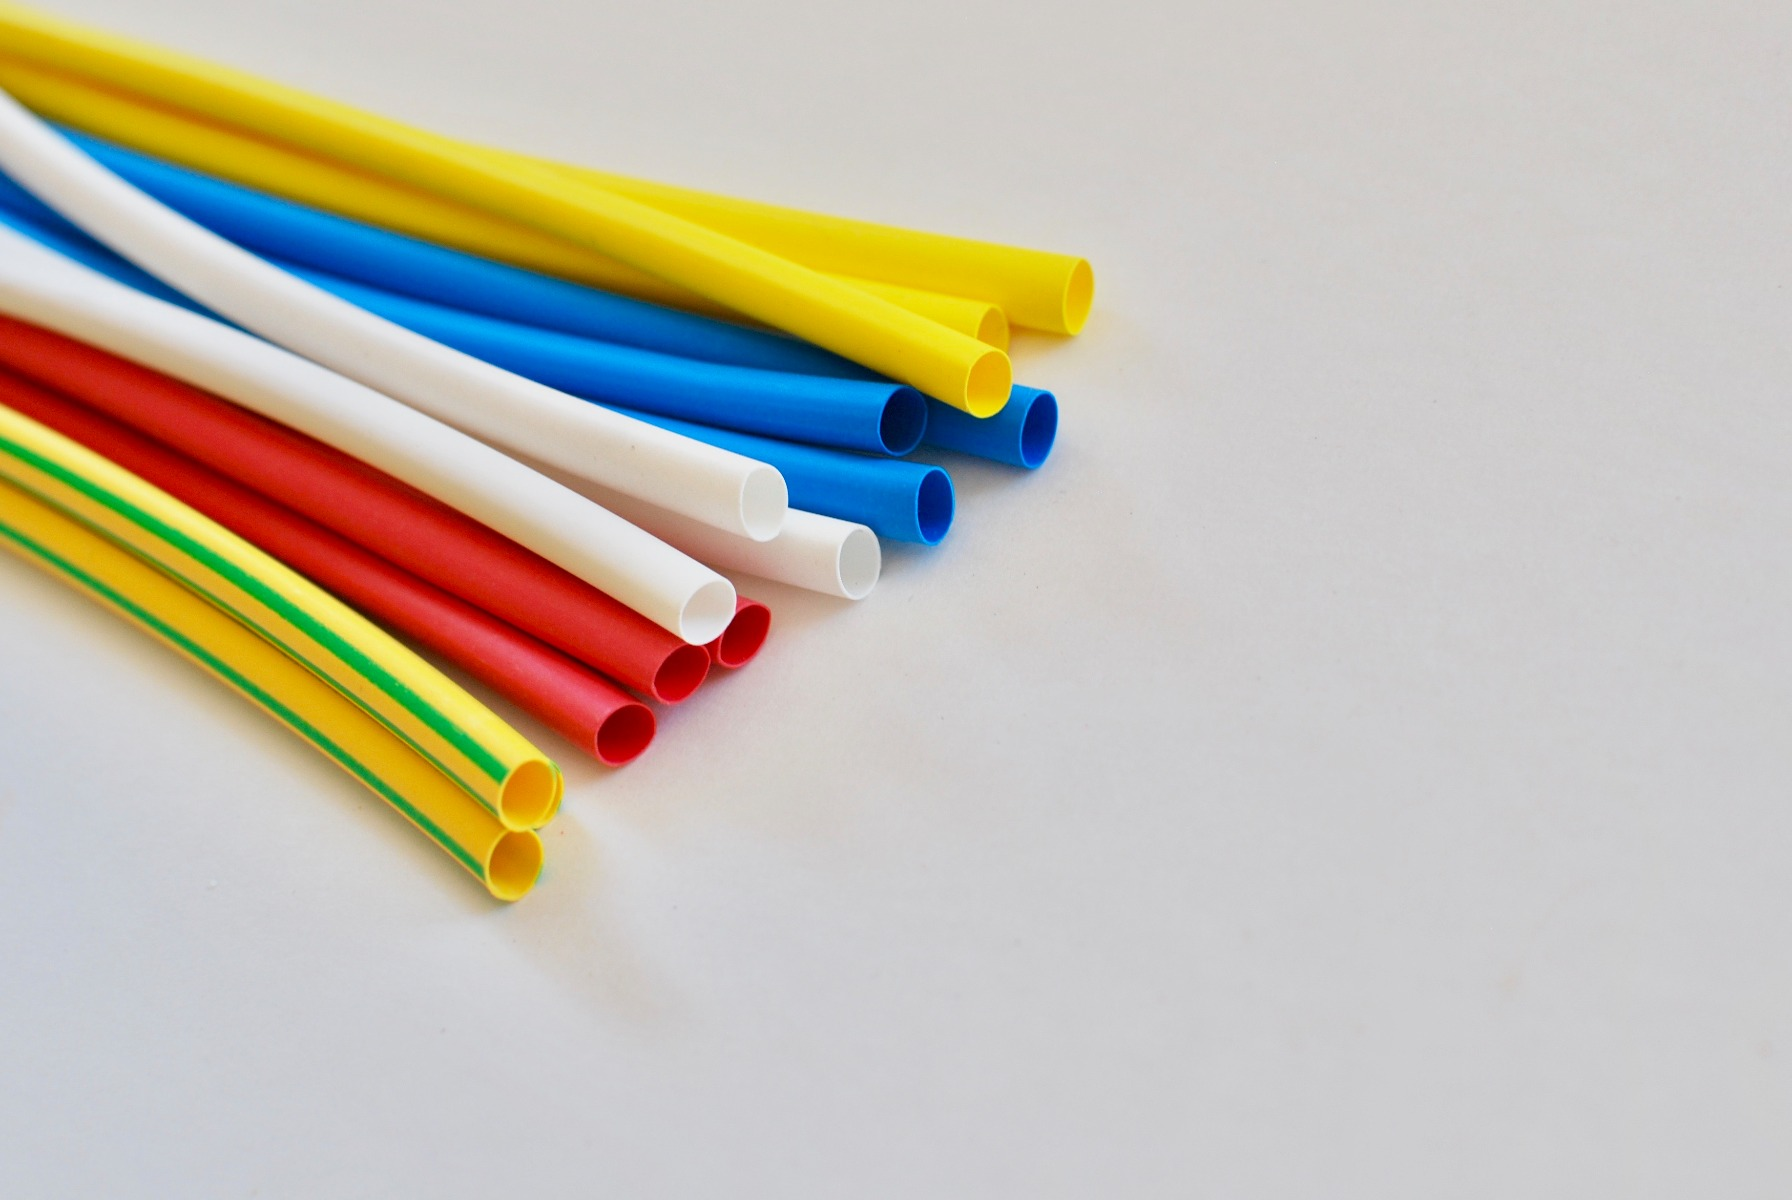 Several colors of heat shrink tubing with very similar sizes.